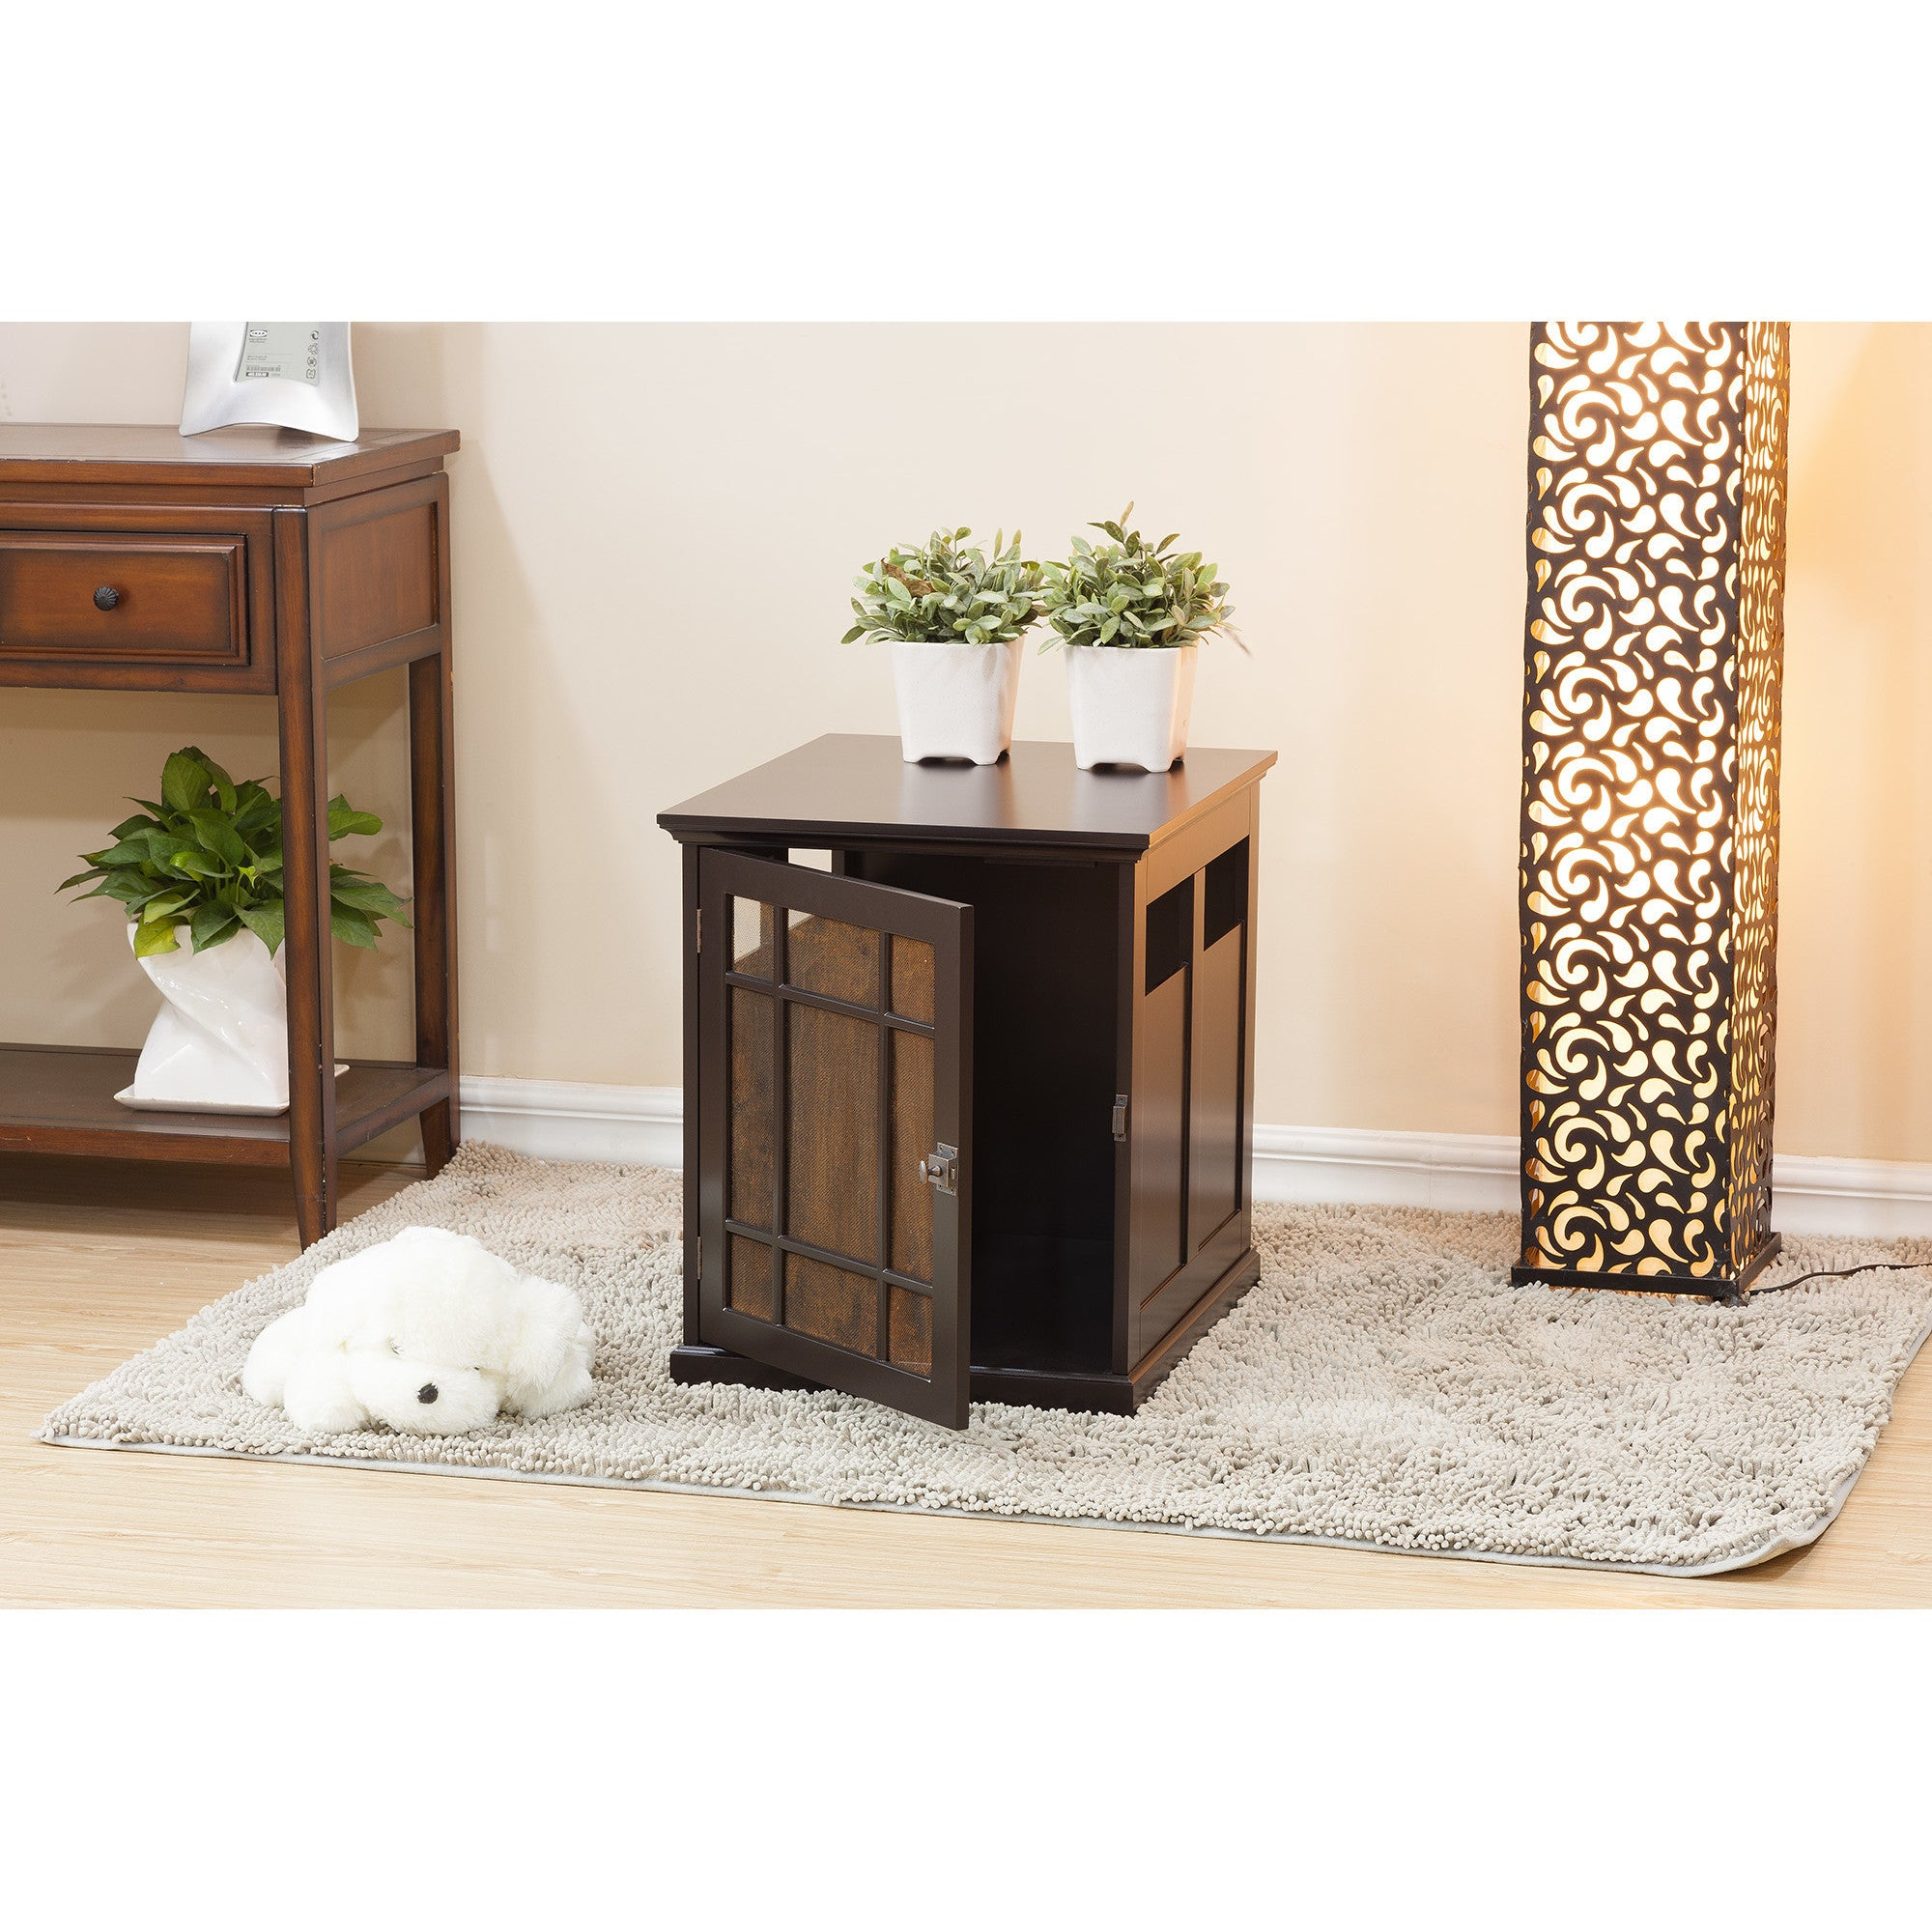 Classic Elegance Pet Crate Table - Clever and Modern Home and office furniture. Pet Furniture